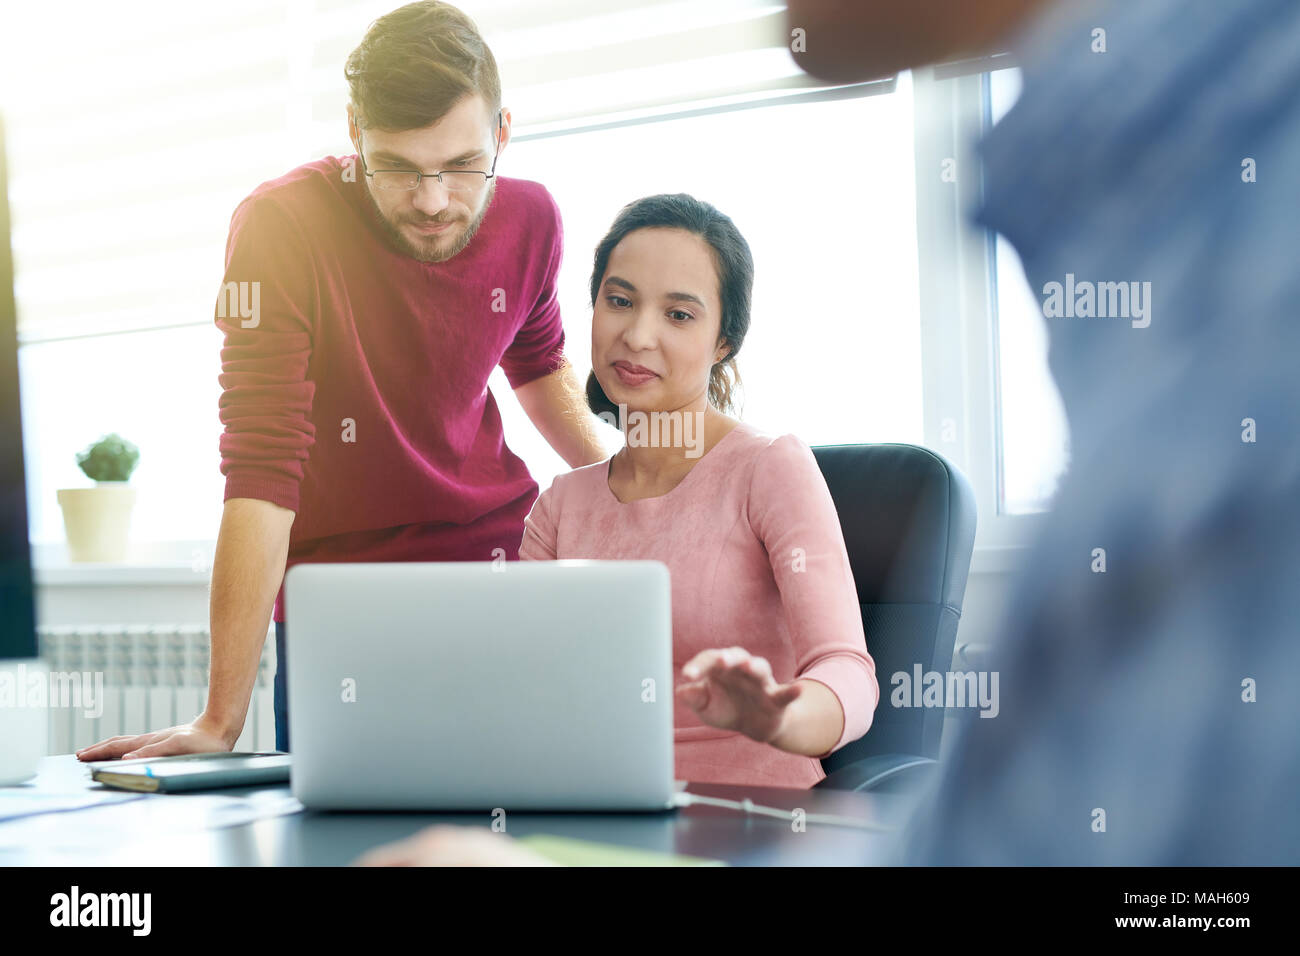 Business colleagues analyzing online report - Stock Image